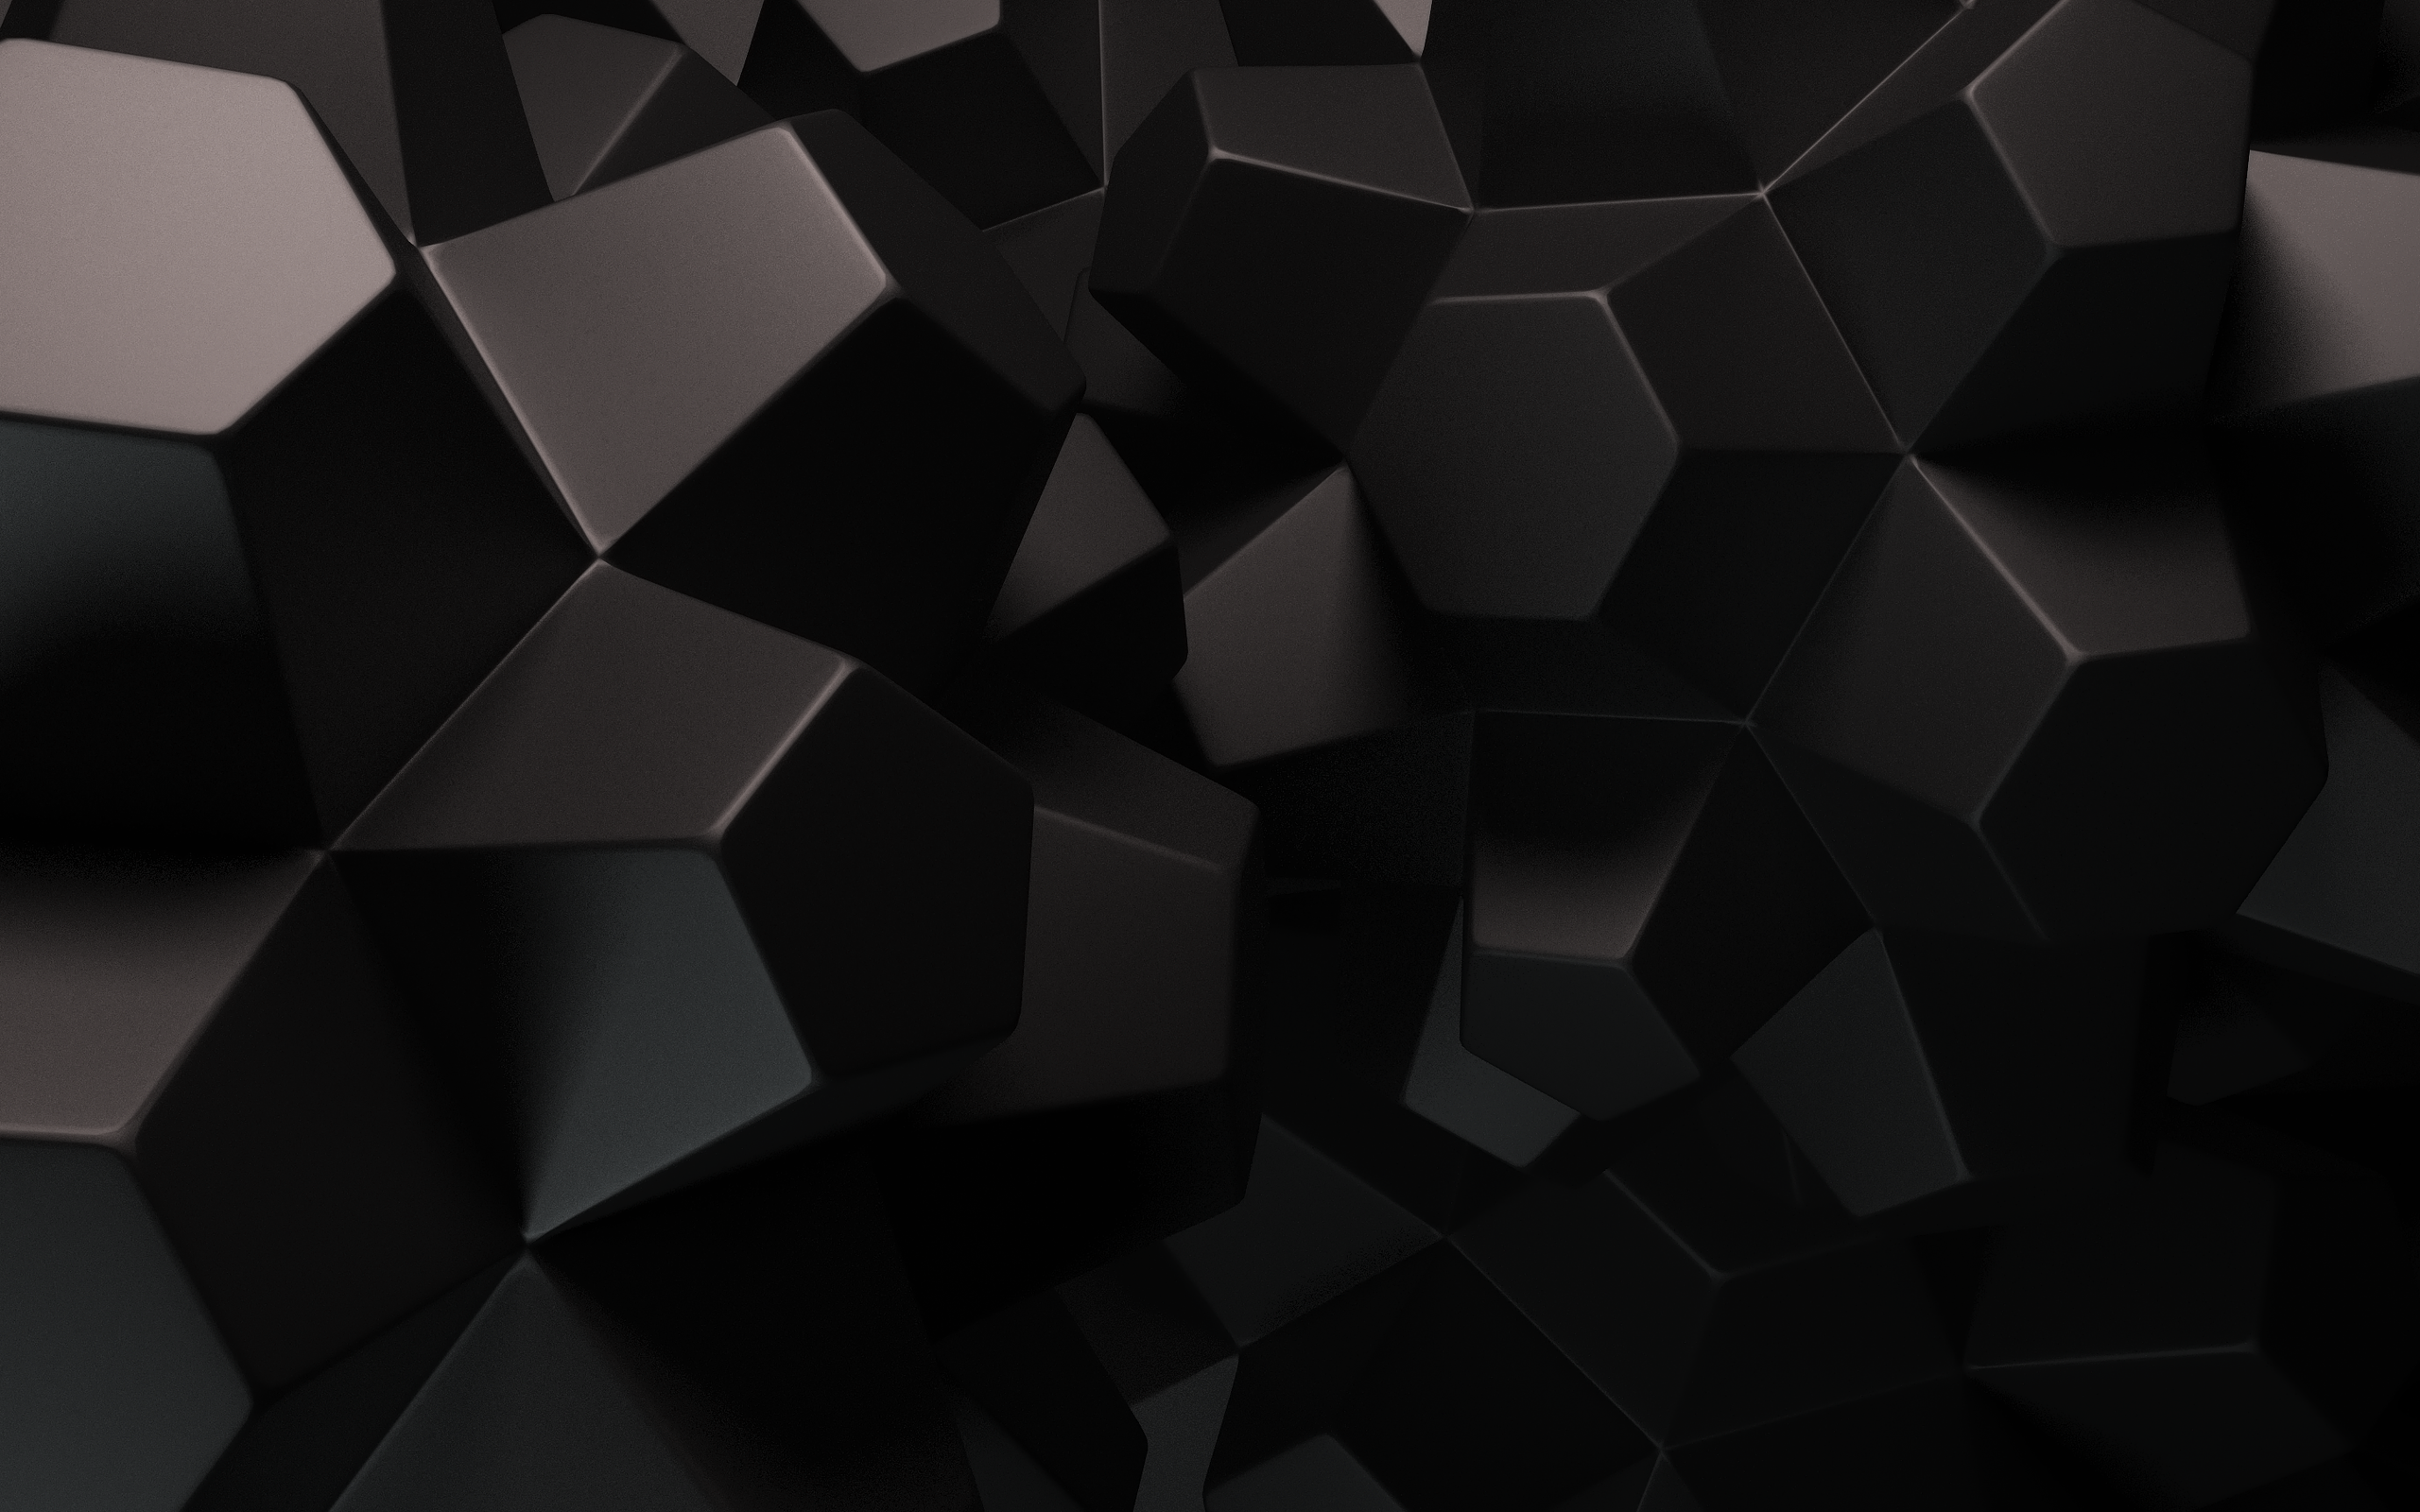 Geometric Wallpaper Black 1 2560x1600